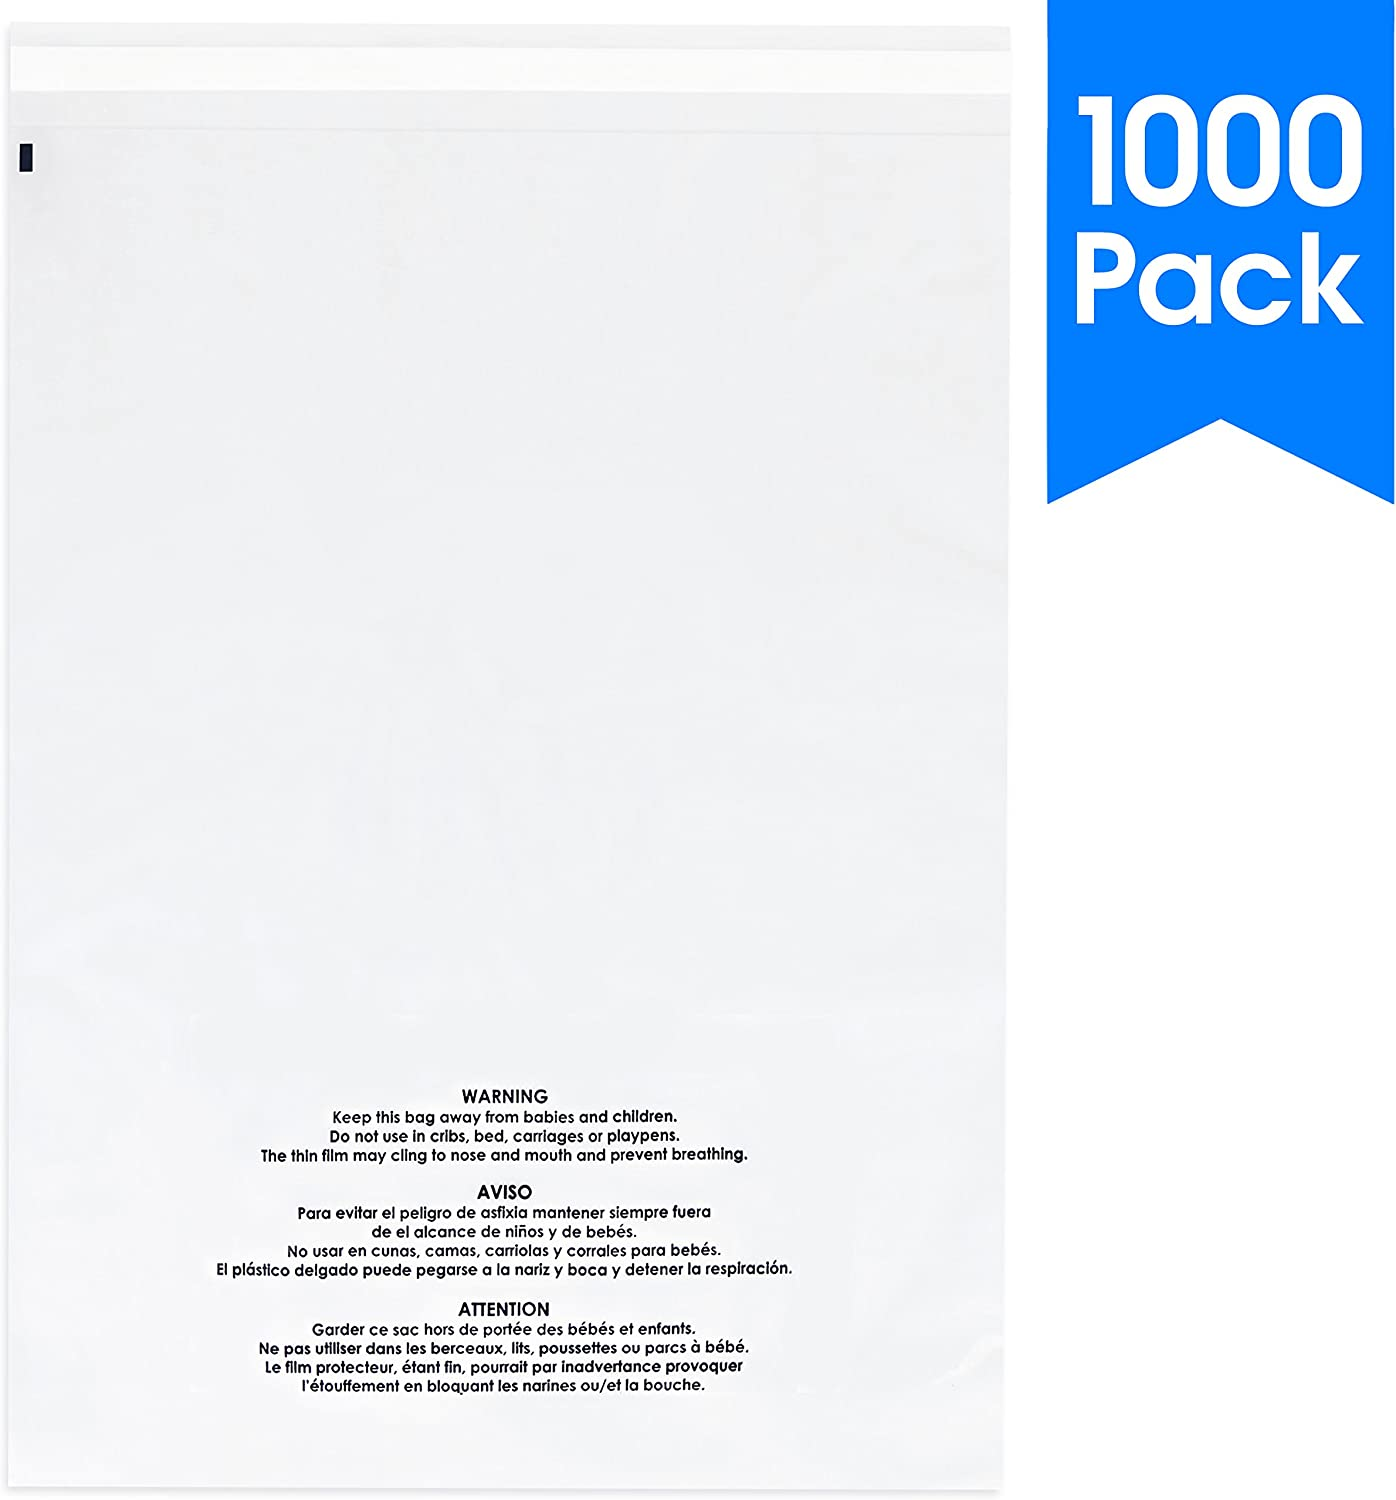 "Spartan Industrial || 1000 Count - 9"" X 12"" Self Seal Clear Poly Bags with Suffocation Warning for Packaging, T Shirts & FBA (More Sizes Available) - Permanent Adhesive"